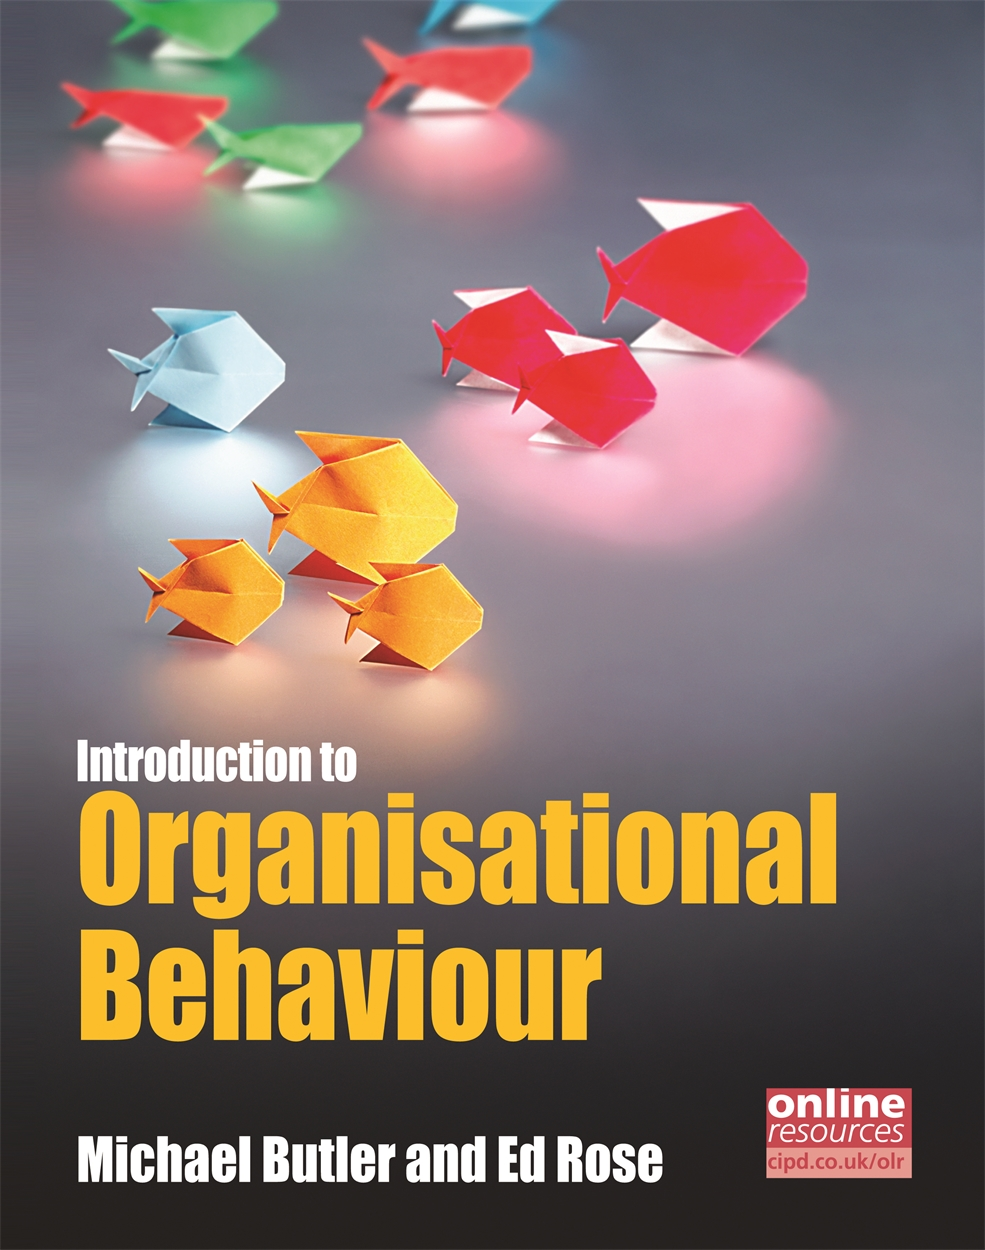 Introduction to Organisational Behaviour (9781843982470)